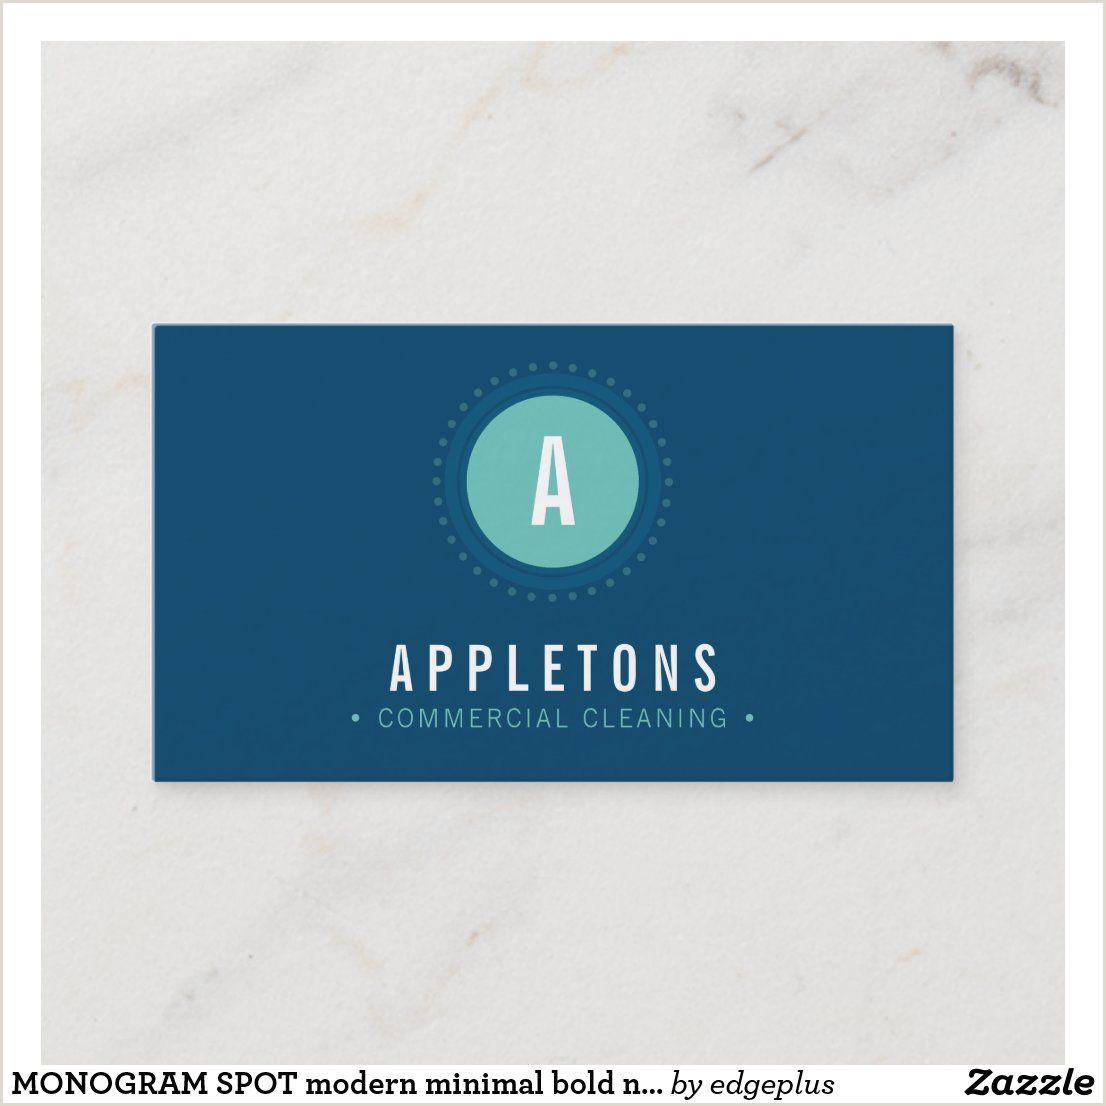 Business Cards That Stand Out Monogram Spot Modern Minimal Bold Navy Blue Mint Business